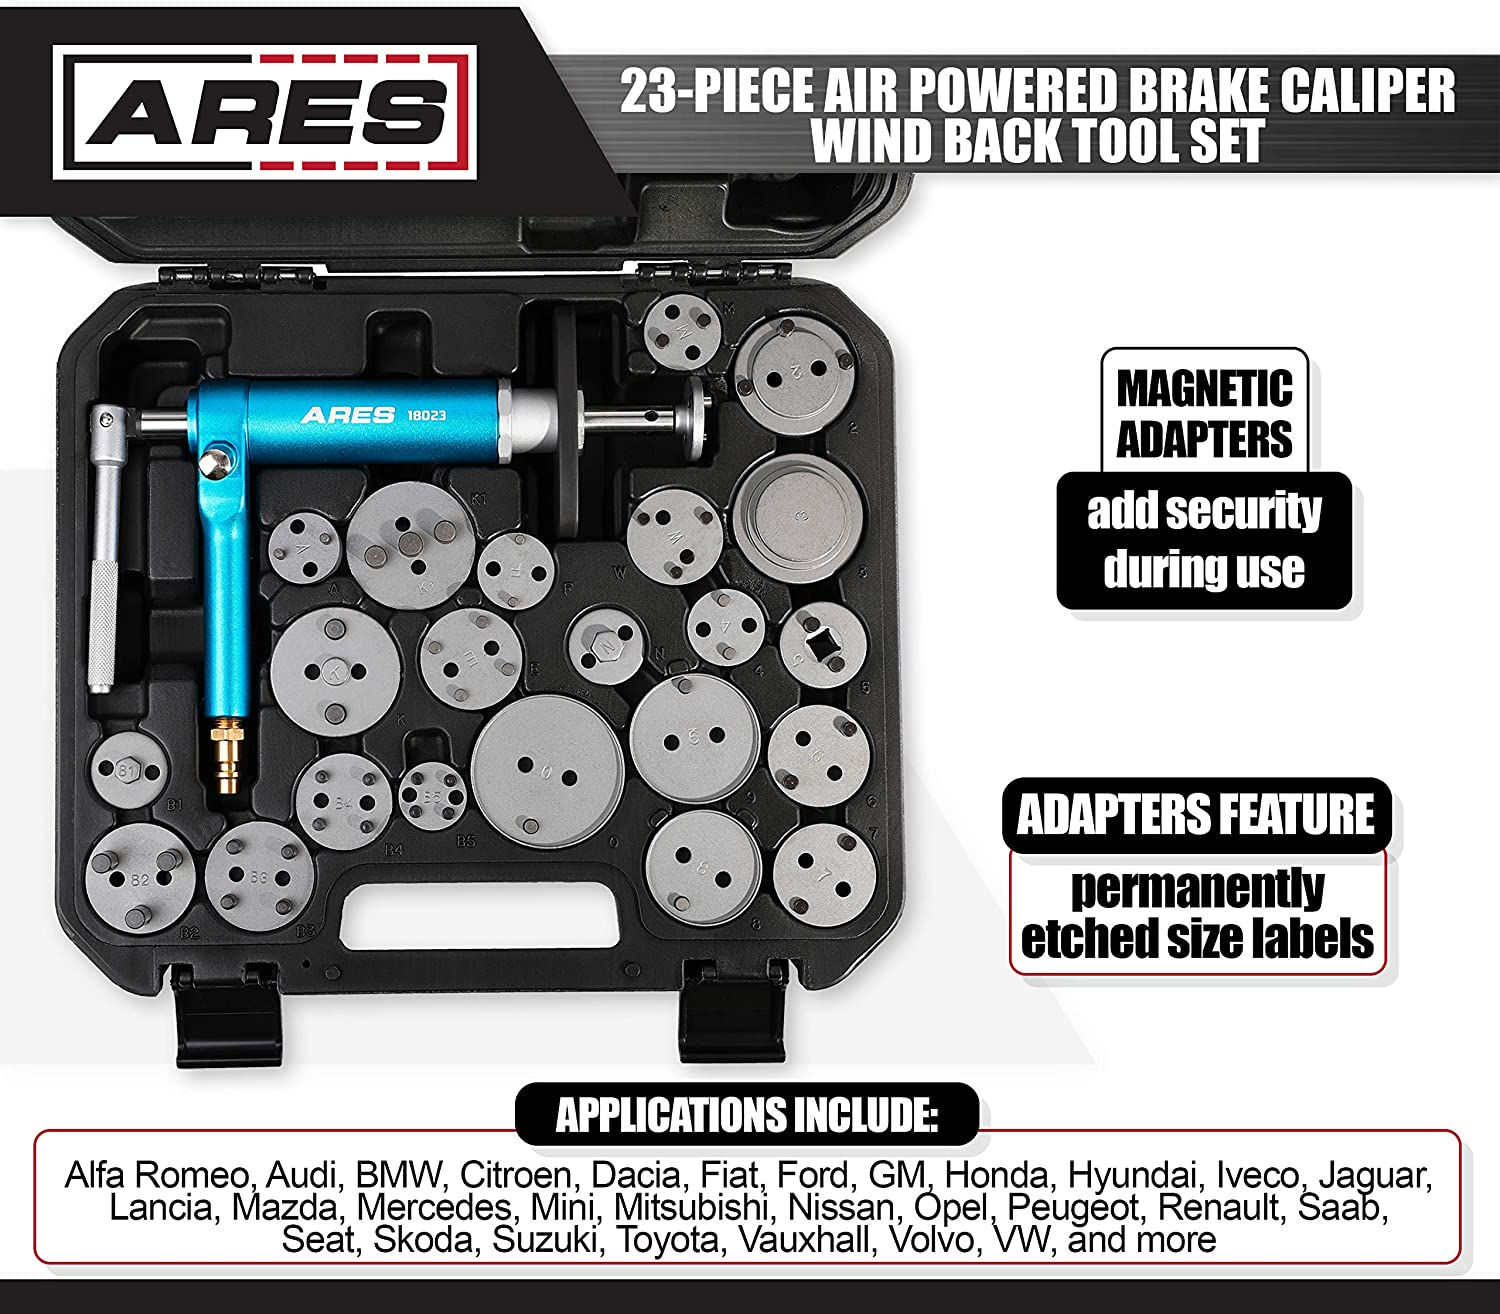 ARES 18024-16-Piece Brake Caliper Wind Back Tool Set Pneumatic Design for Easy One-Person Use Includes Compressor Tool Storage Case Included 15 Drive Key Disc Adapters